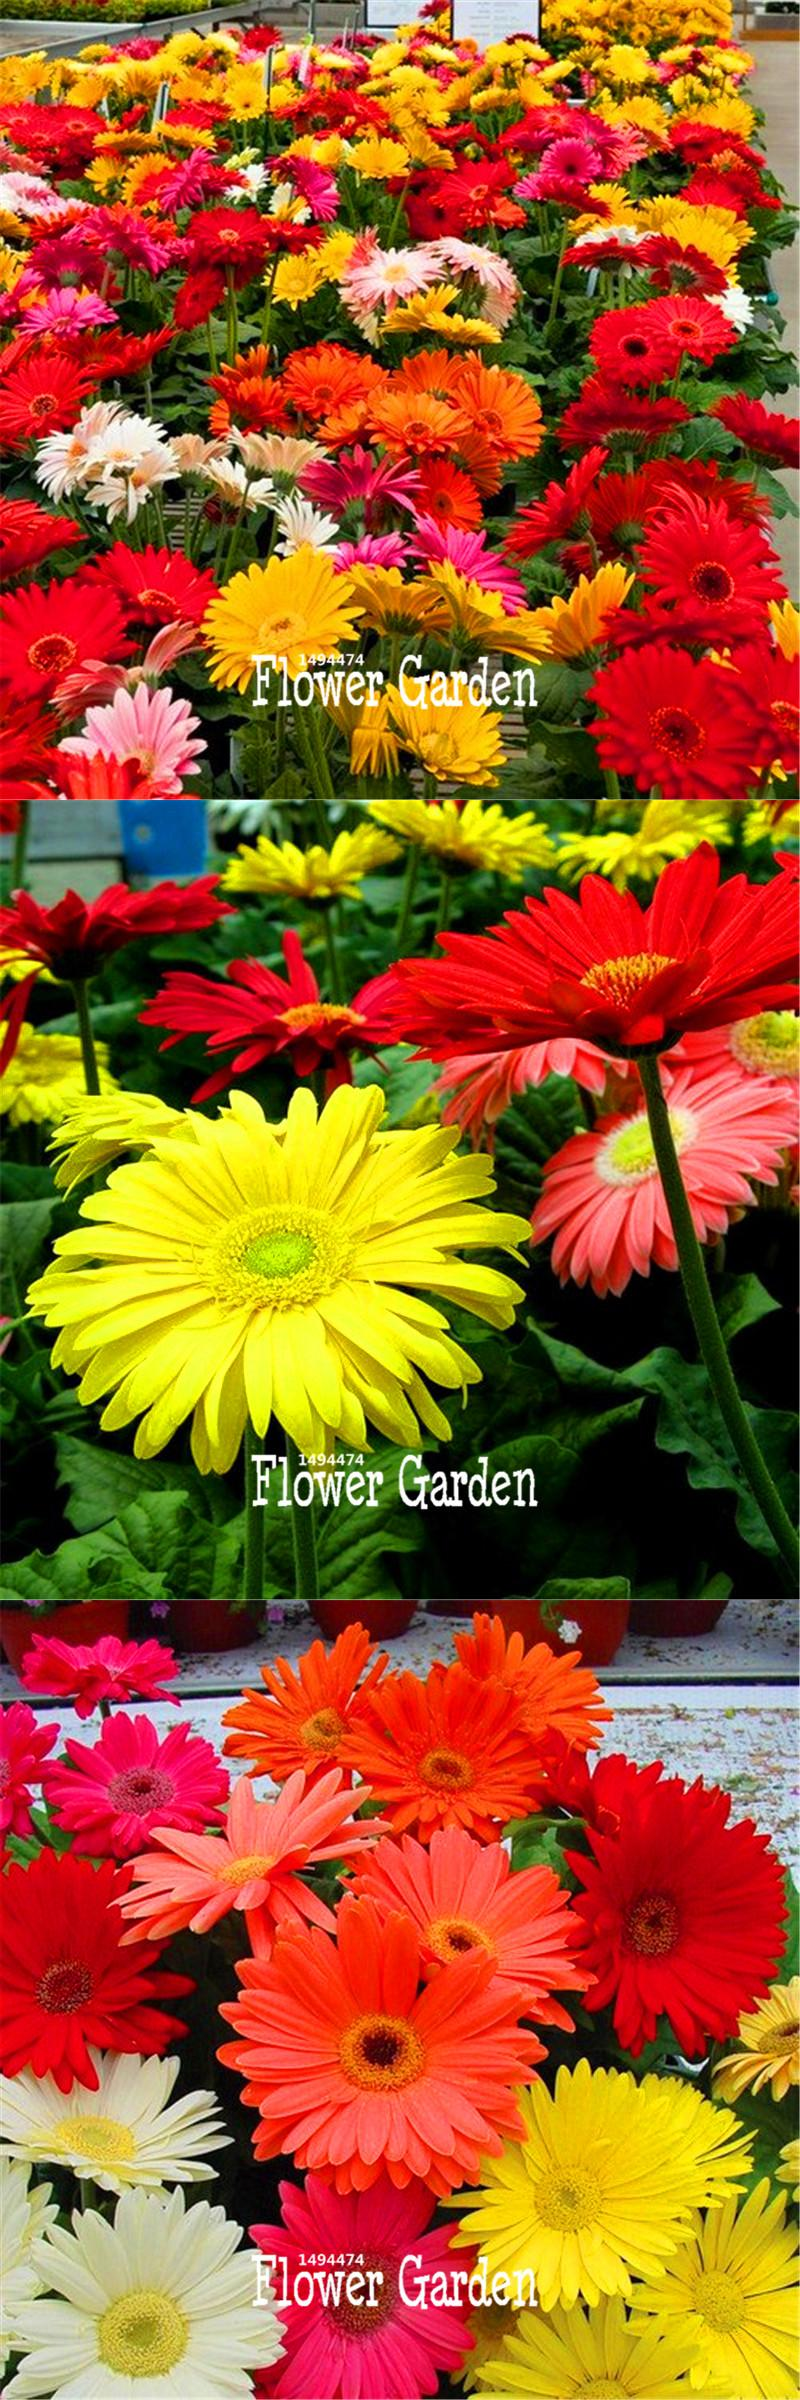 Visit To Buy 100 Pieces Pack Lowest Price Gerbera Daisy Hybrids Mix Flower Seeds Bonsai Plants Easy To Grow Seeds F Flower Seeds Bonsai Plants Growing Seeds